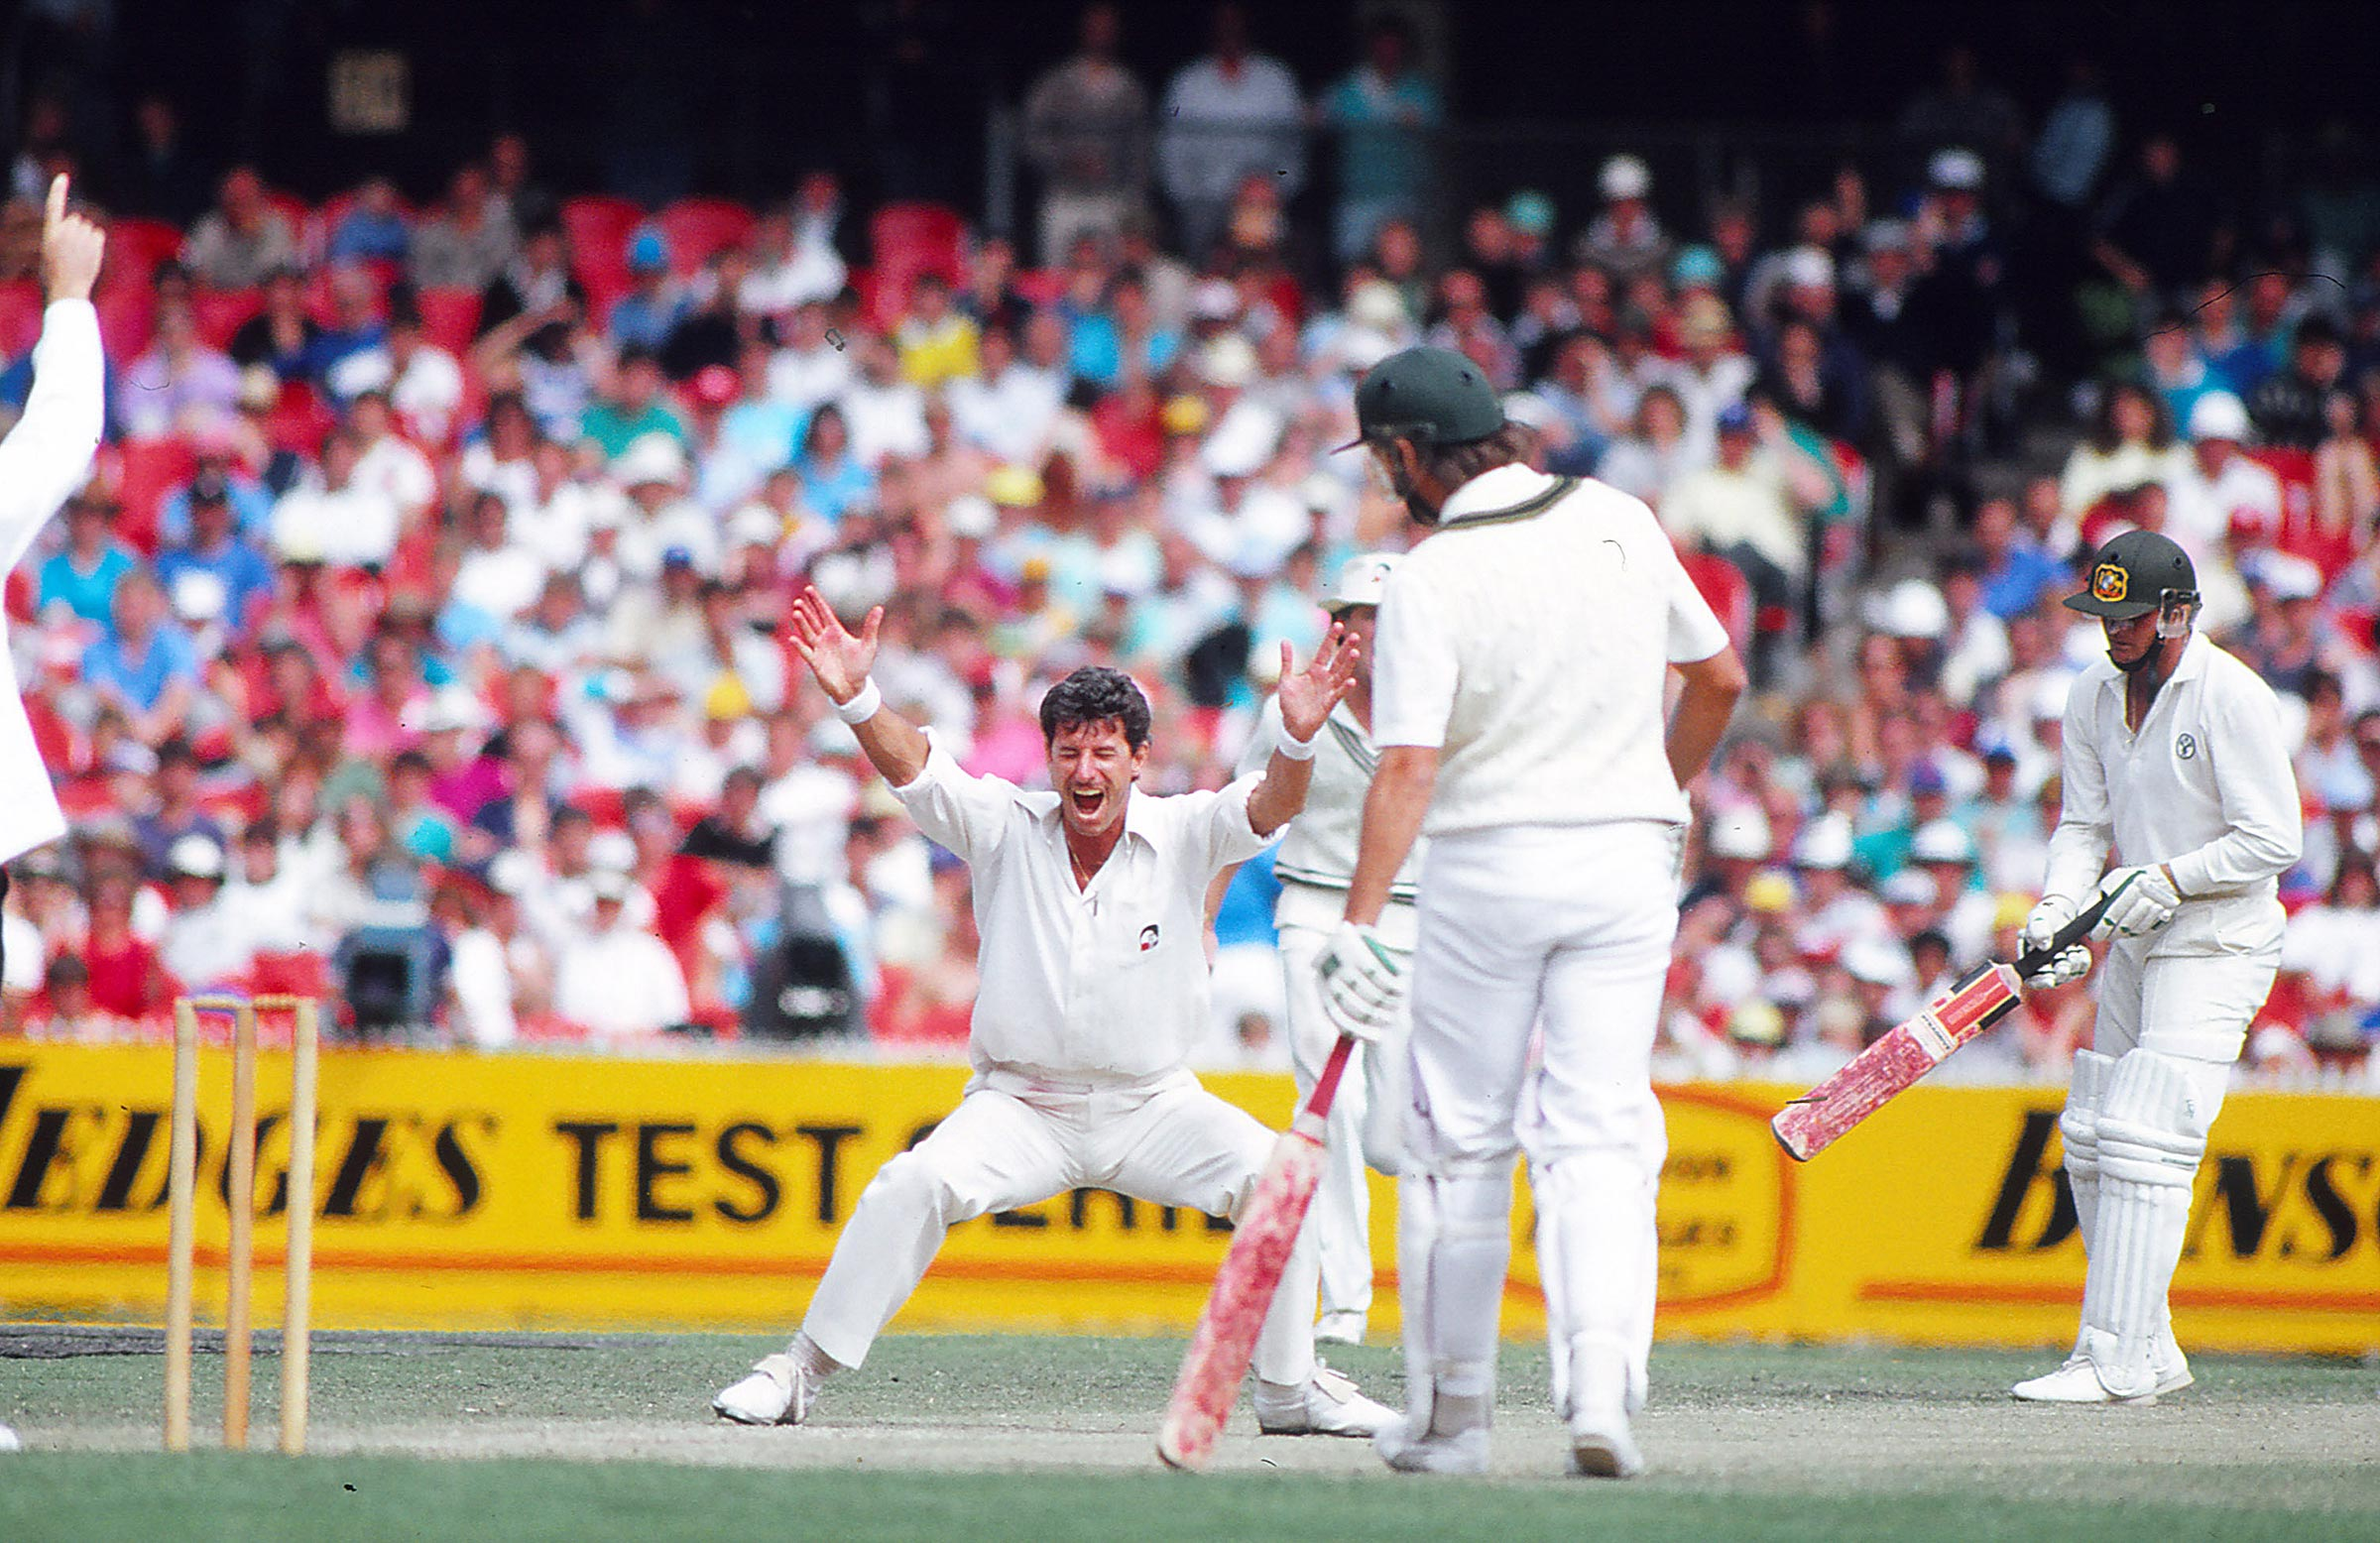 Hadlee took 10 wickets in the 1987 Boxing Day Test // Getty